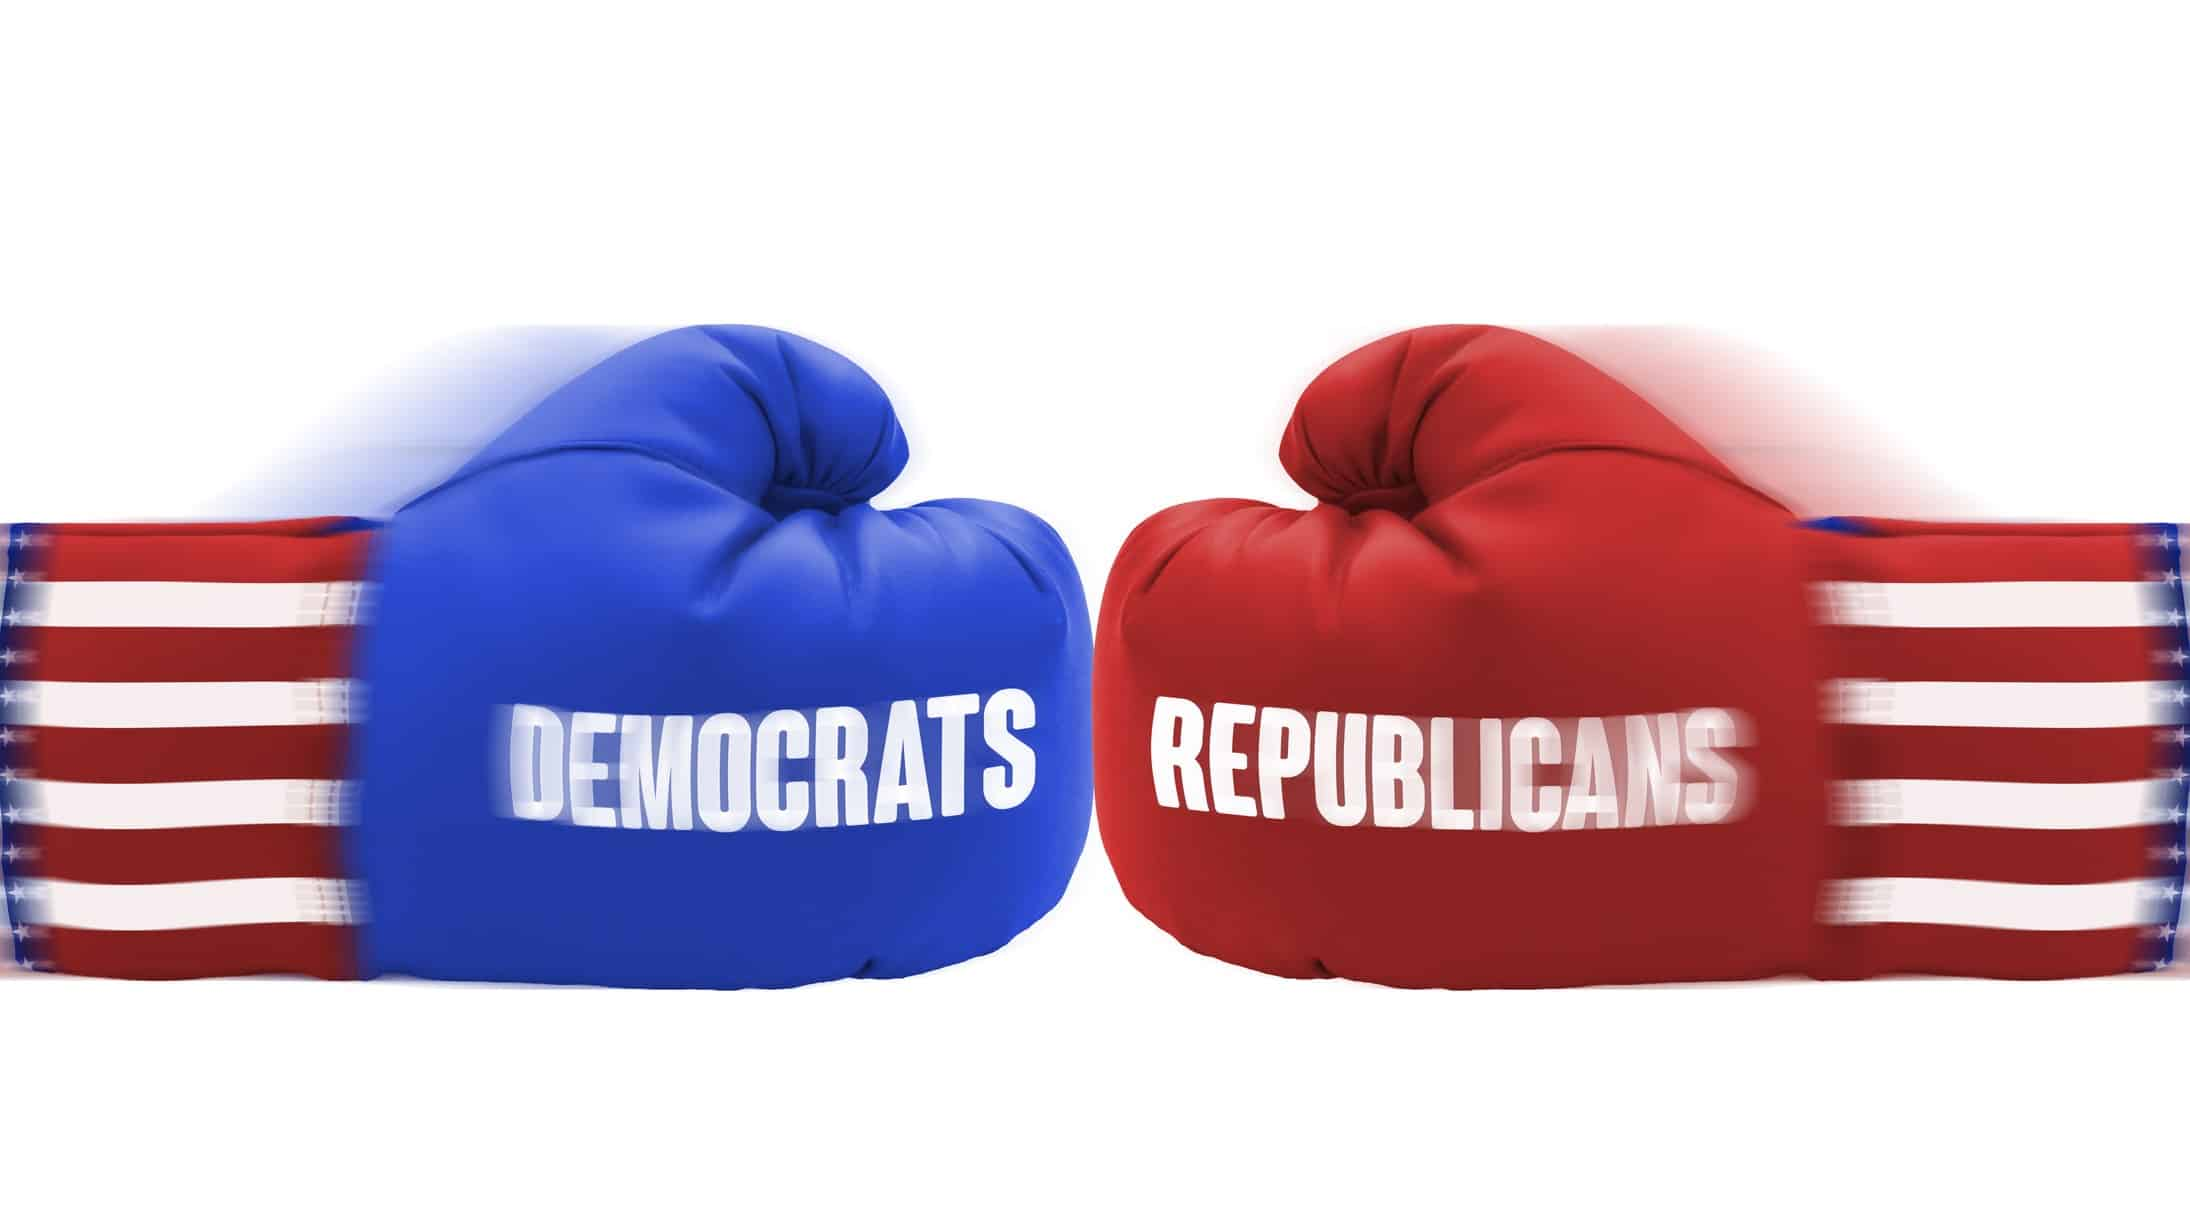 asx shares and united states election represented by red and blue boxing gloves meeting in punch